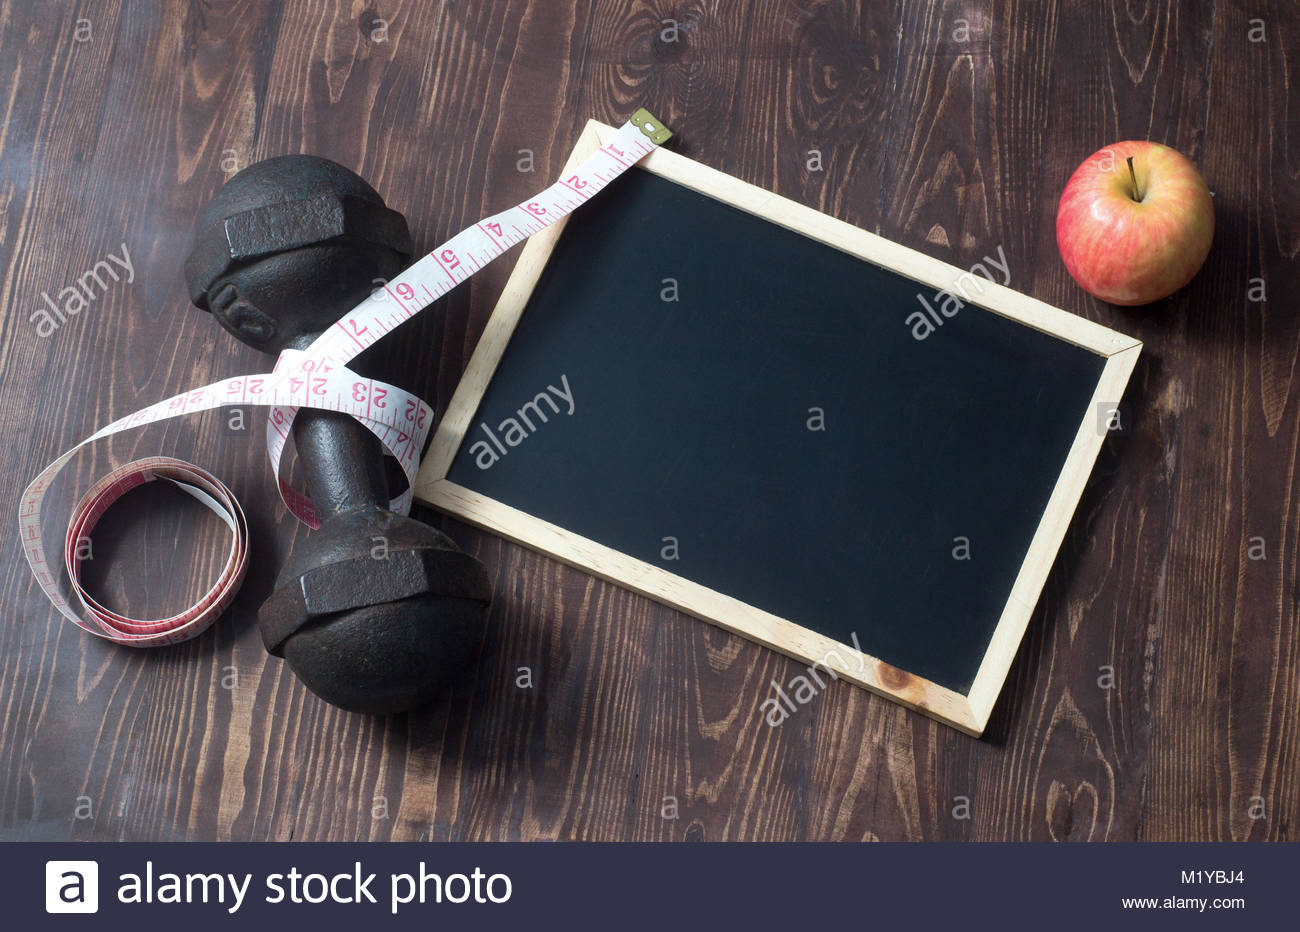 fruits for weight loss, a measuring tape, diet - Stock Image